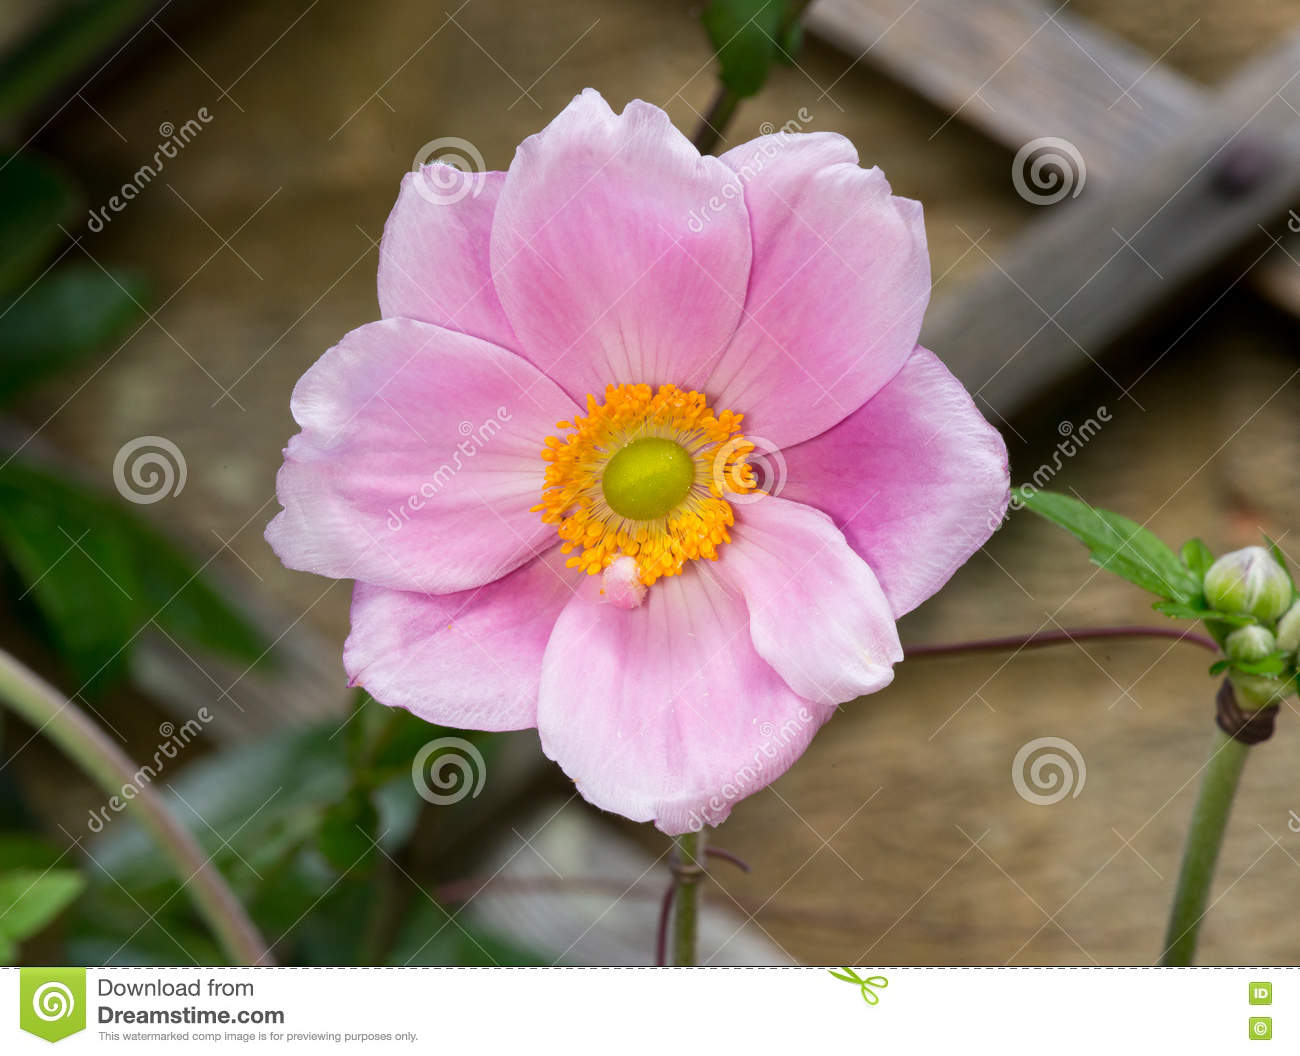 Japanese Anemone clipart #19, Download drawings